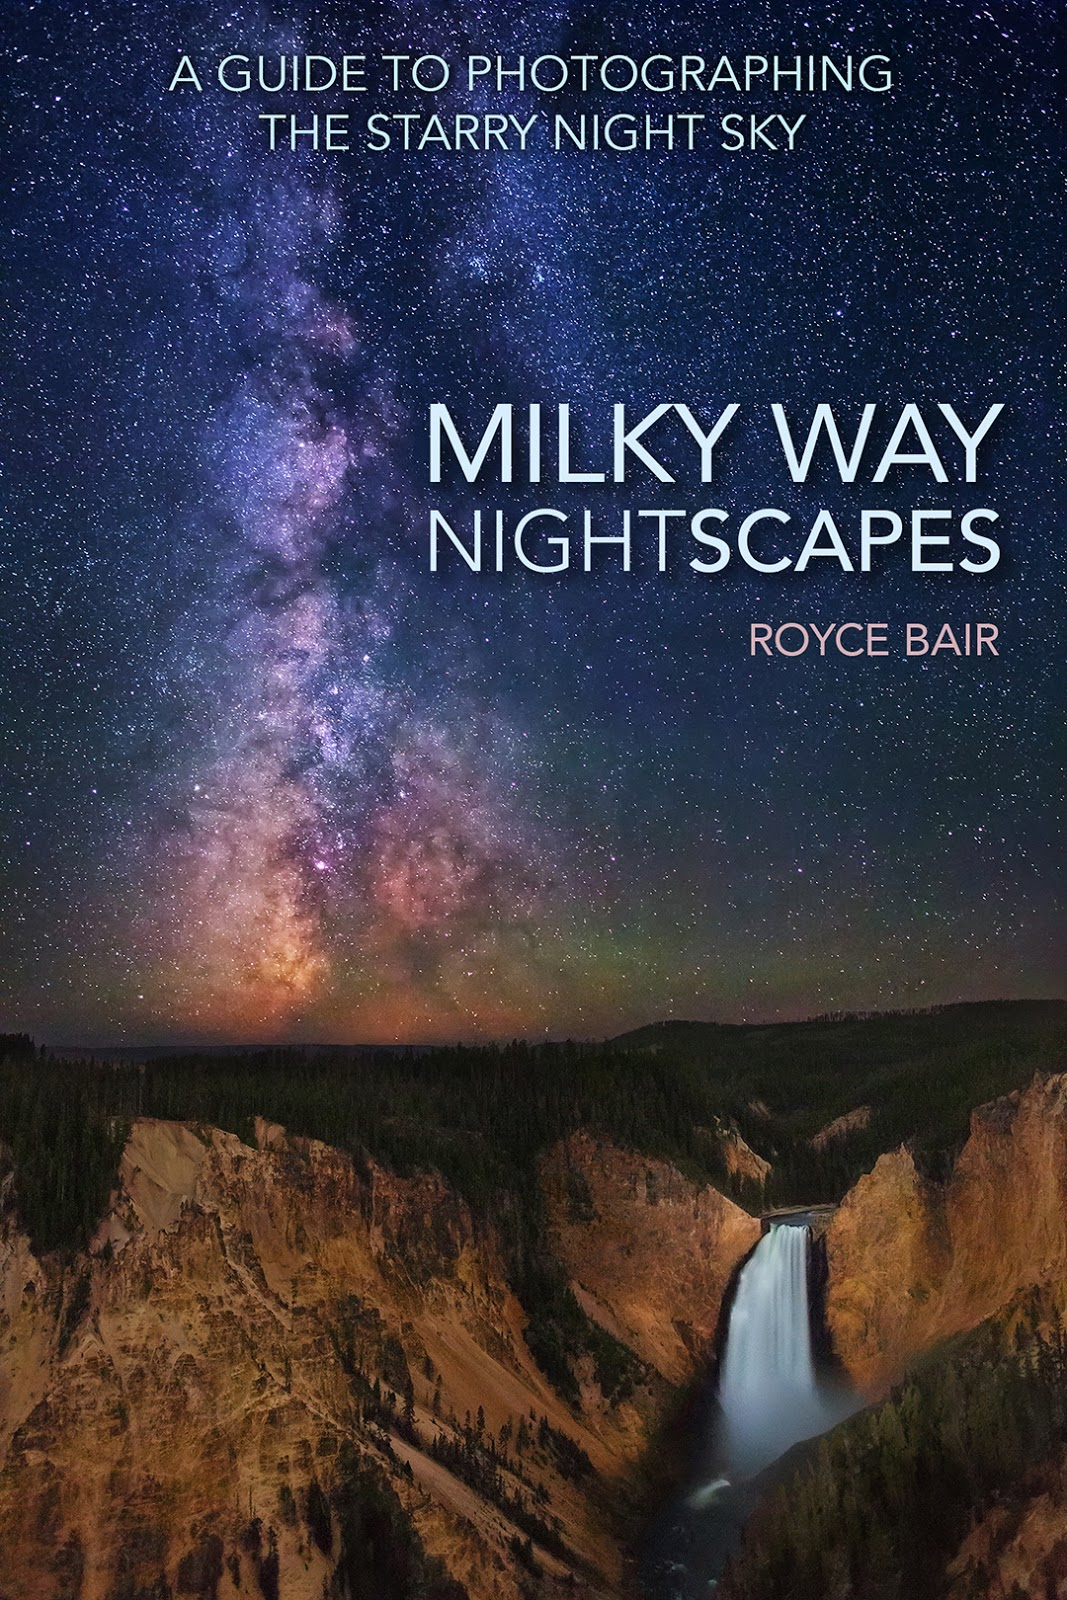 Into the night photography milky way nightscapes ebook milky way nightscapes ebook fandeluxe PDF